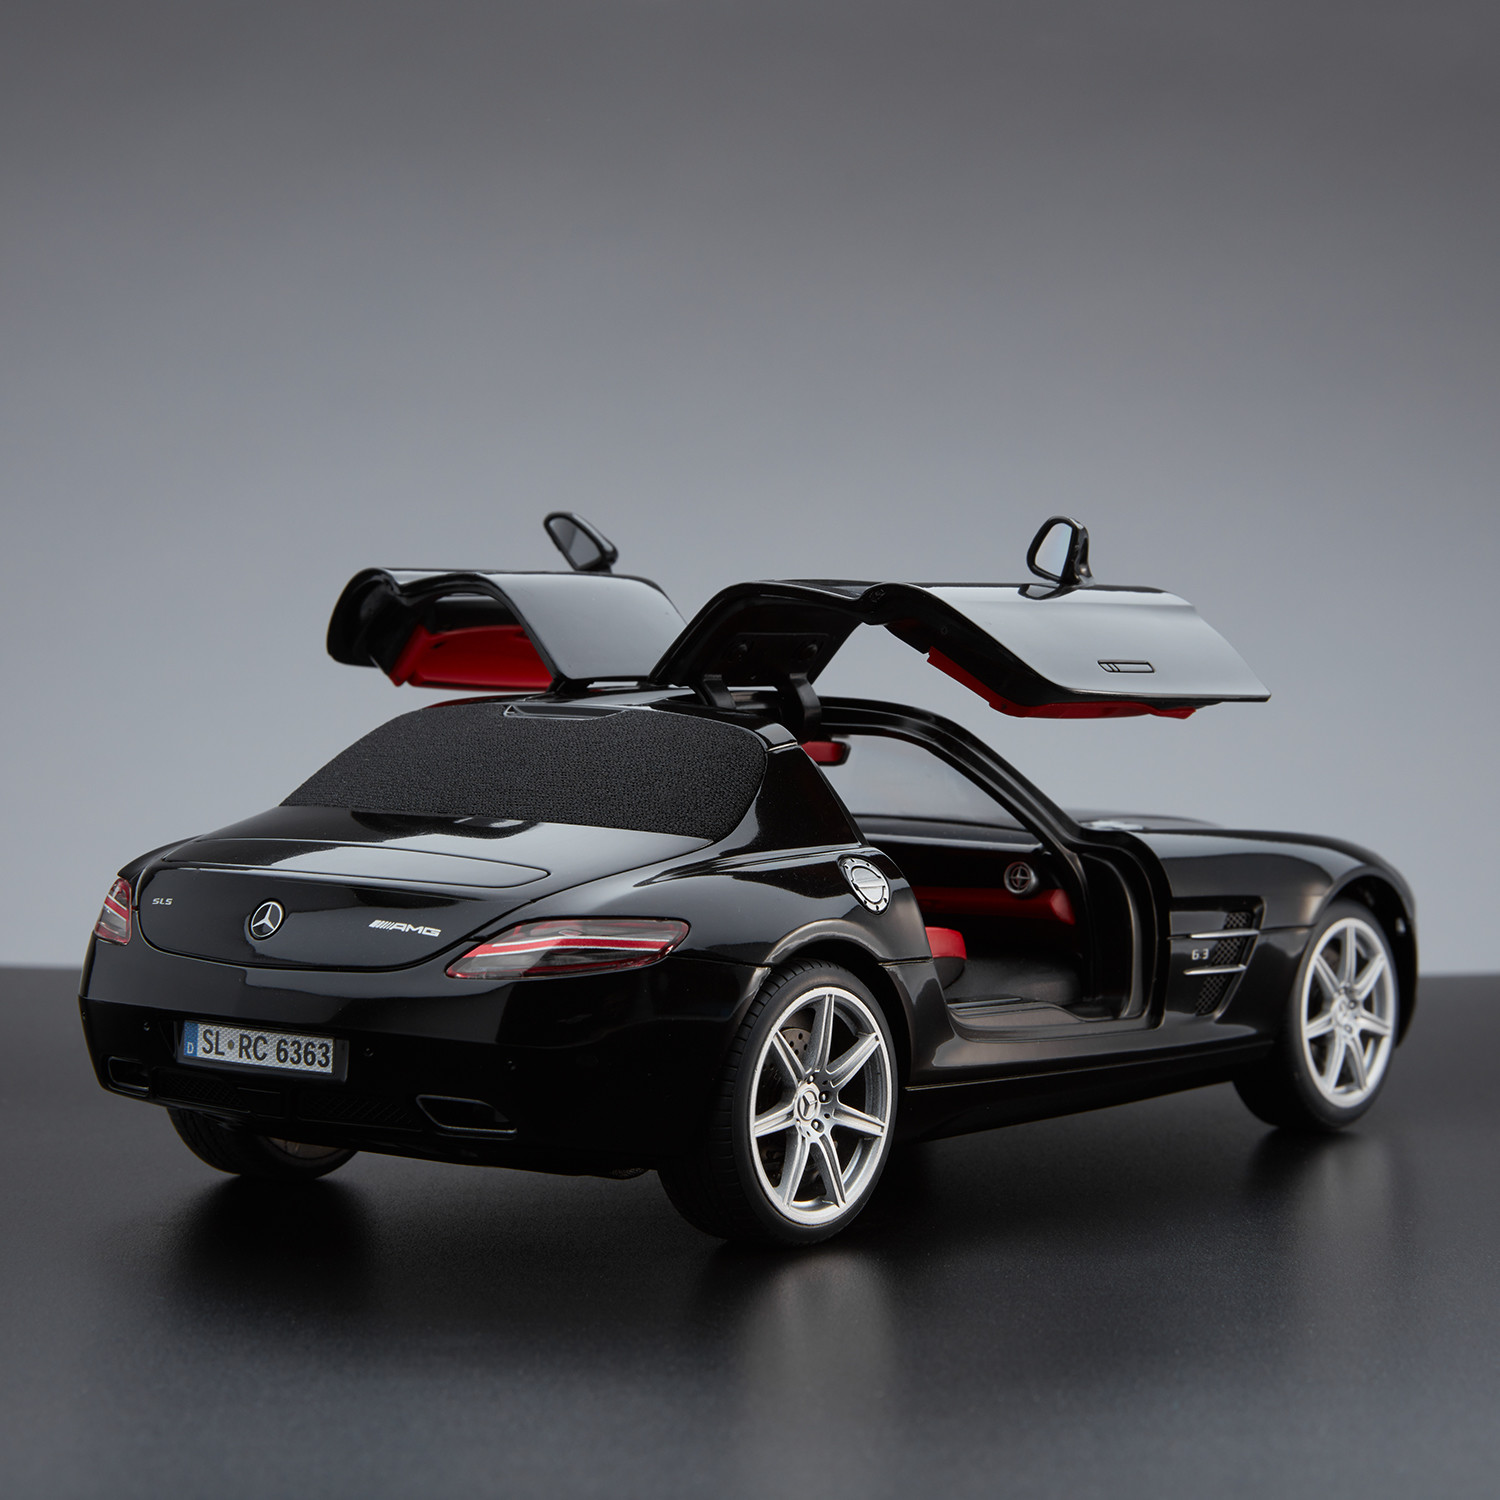 Bluetooth mercedes benz sls amg silverlit touch of modern for Silverlit mercedes benz sls amg